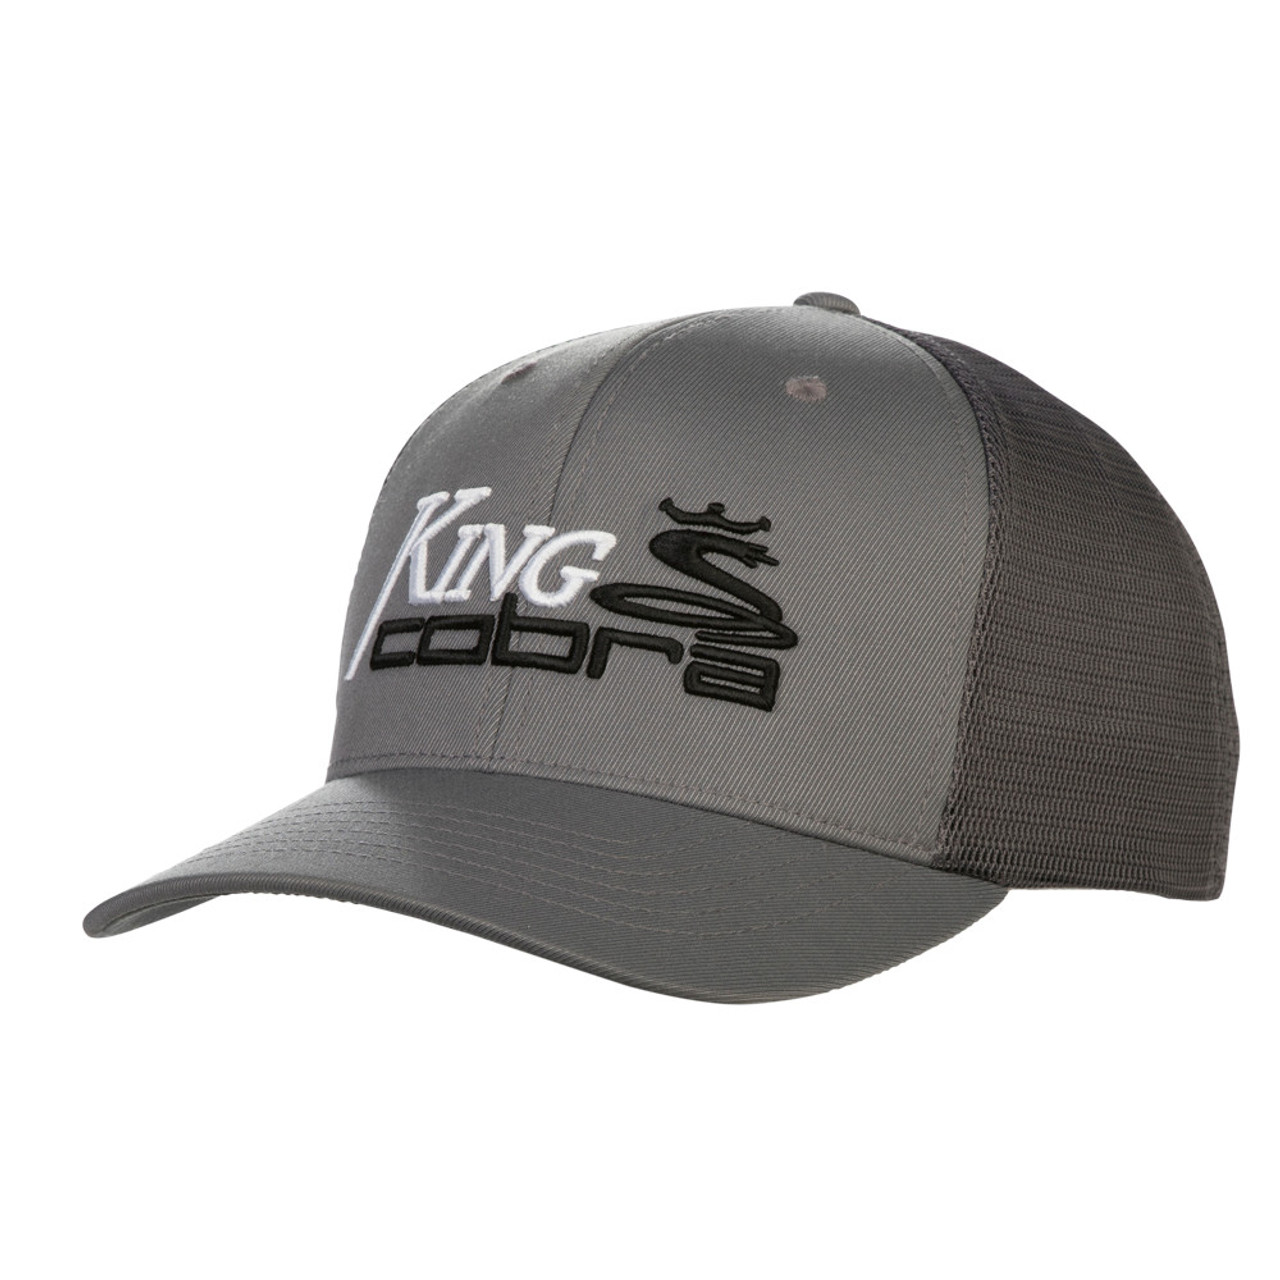 Cobra KING Trucker Snapback Cap - Quiet Shade